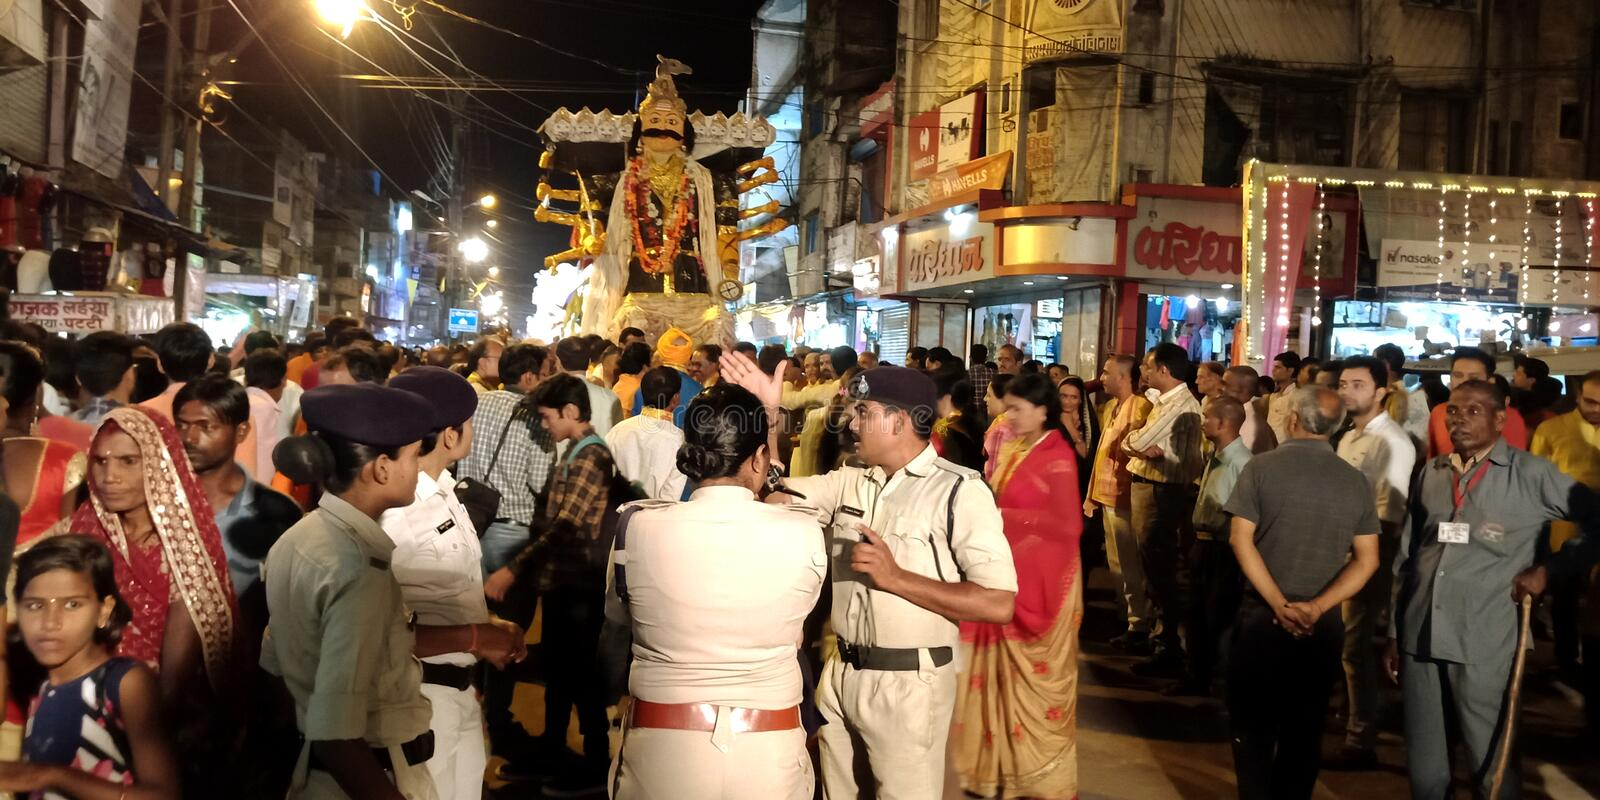 lady police commander standing on a group during Hindu religious festival road show stock photography